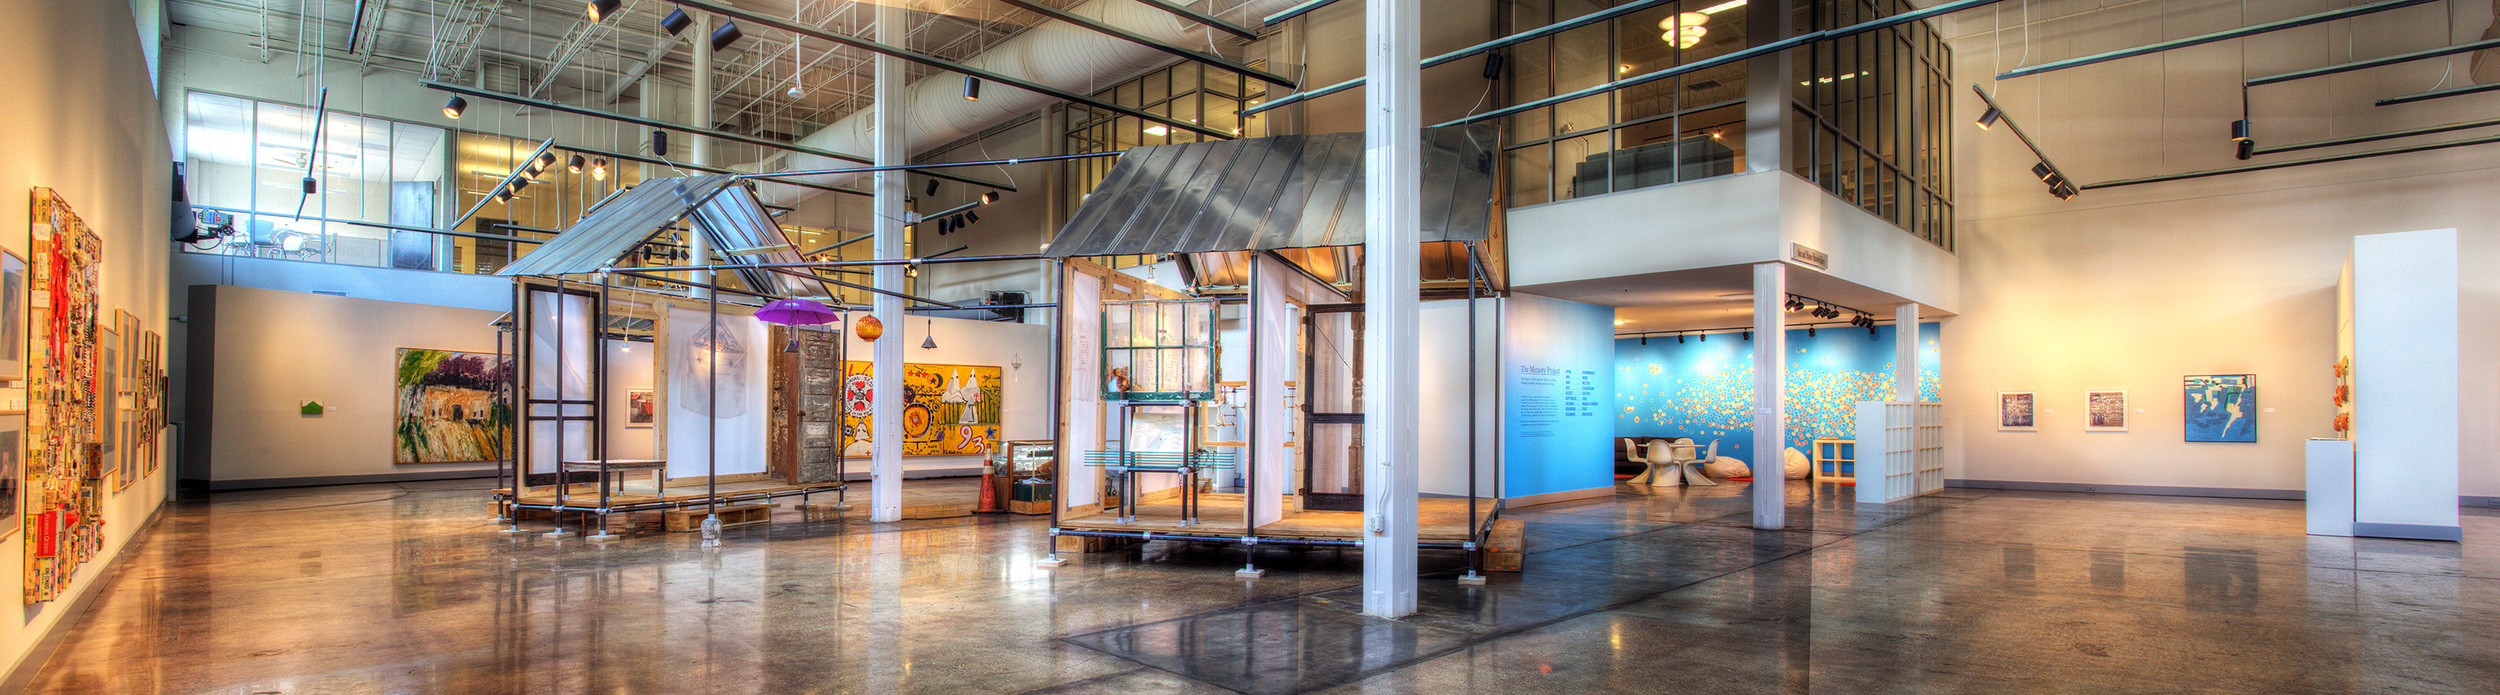 Space 301 | Centre for the Living Arts | Mobile, Alabama